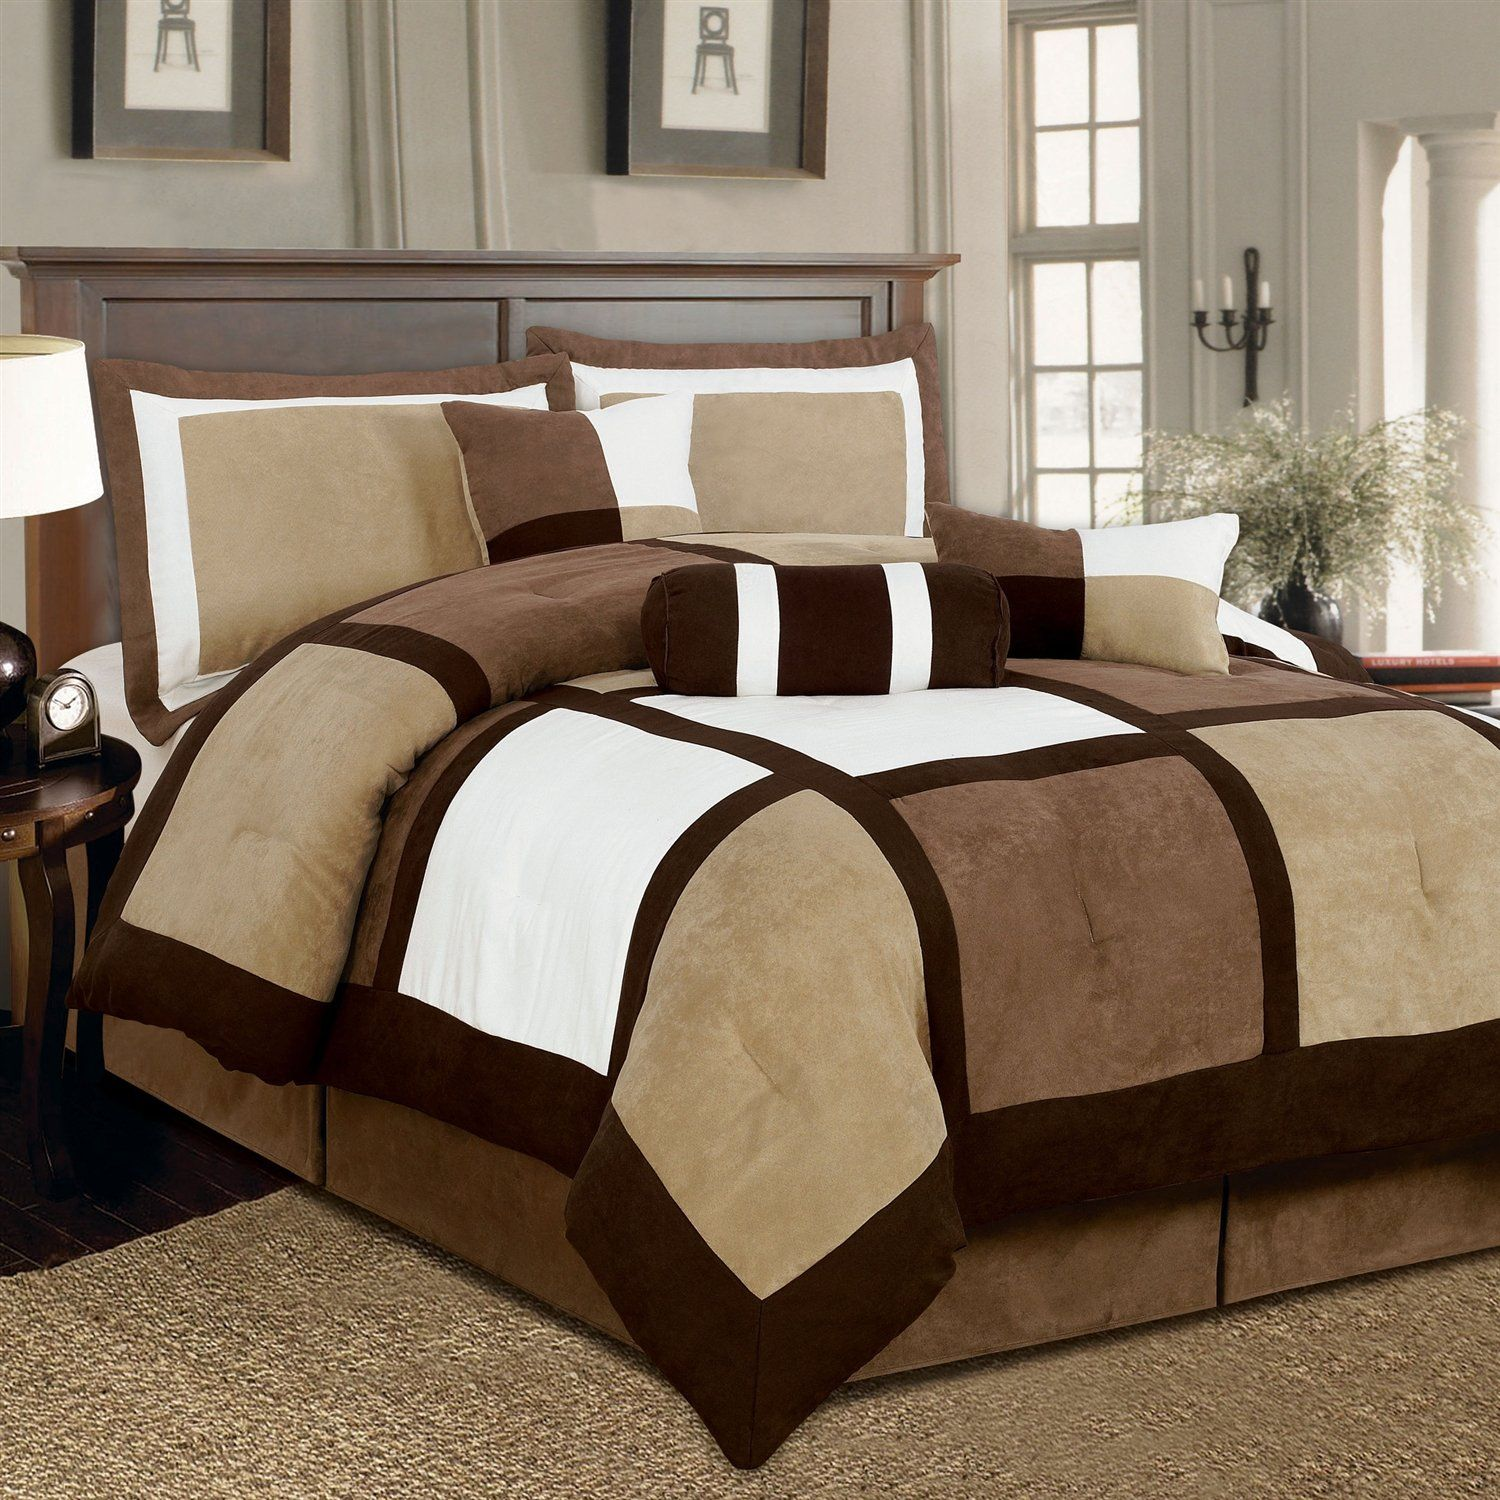 King size 7-Piece Bed in a Bag Patchwork Comforter set in Brown ...